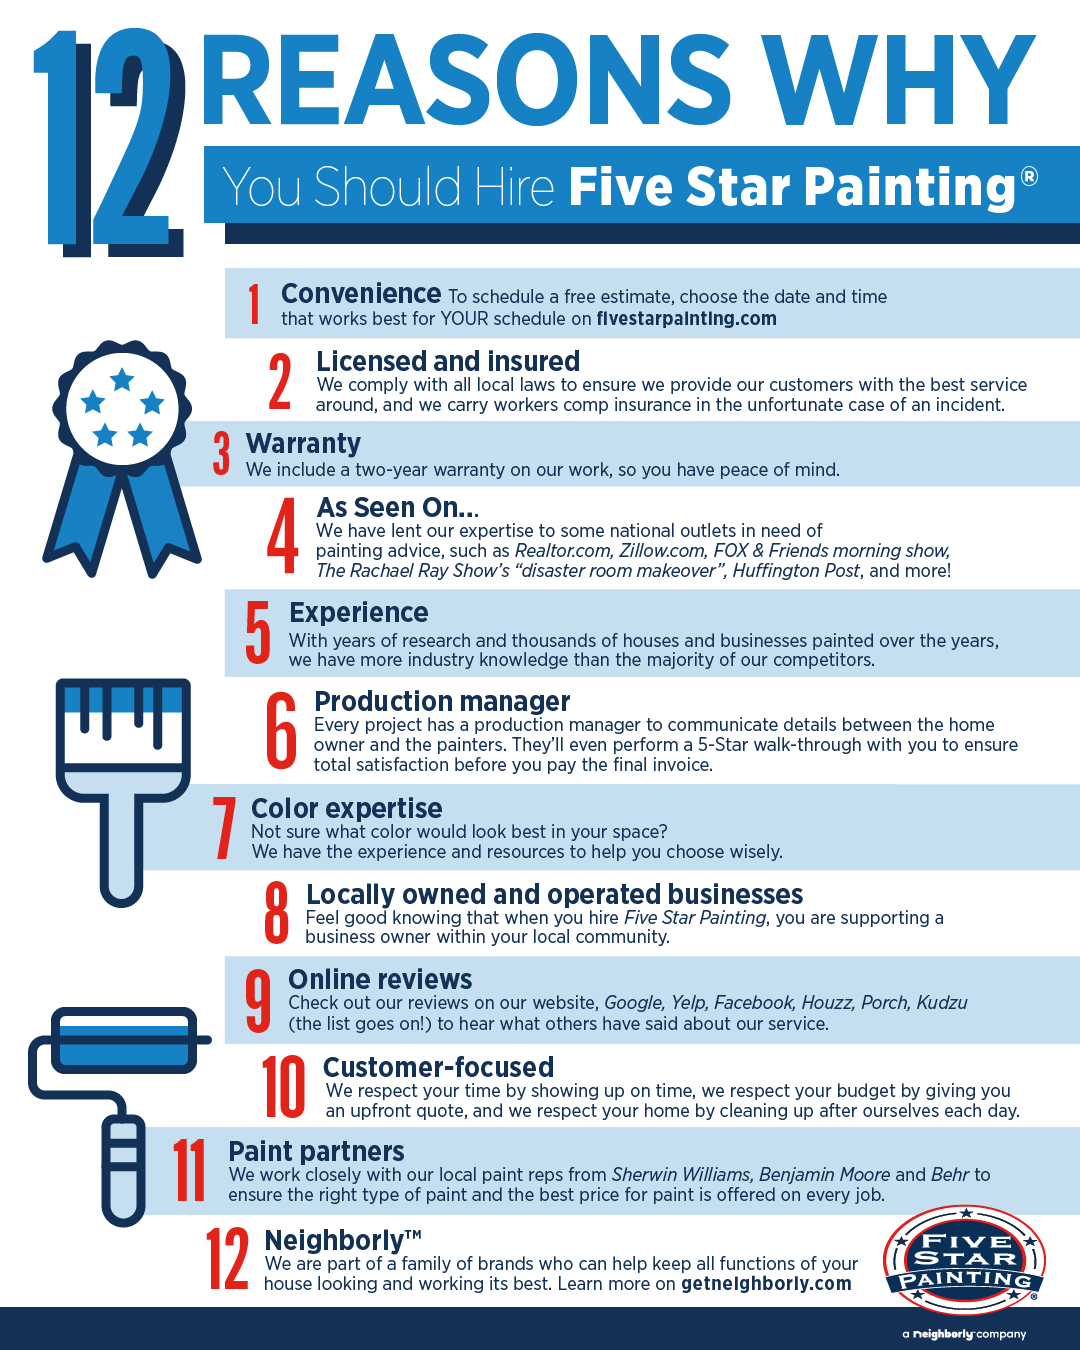 Reasons Why Makeup Is Important: 12 Reasons To Hire Five Star Painting